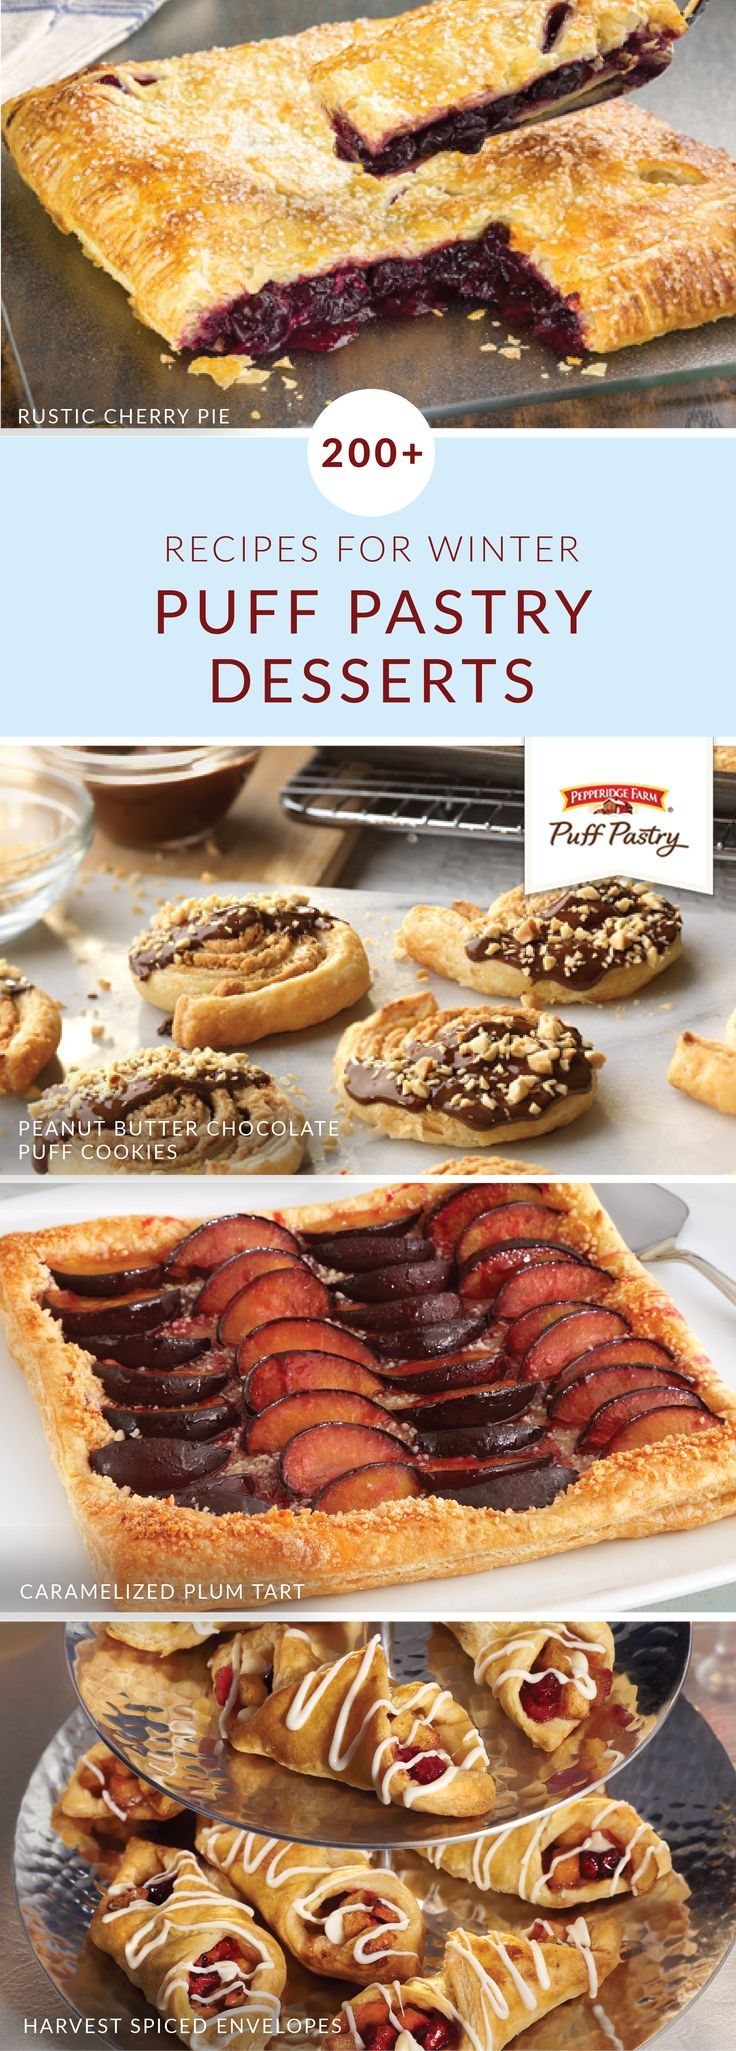 Satisfy your sweet tooth with a little help from this collection of Puff Pastry desserts for winter. Indulgent recipes like Apple Roses, Peanut Butter Chocolate Puff Cookies, and S'Mores Sandwich Swirls ensure that you'll always have a tasty way to celebrate during the upcoming holiday season. Click here to learn more.